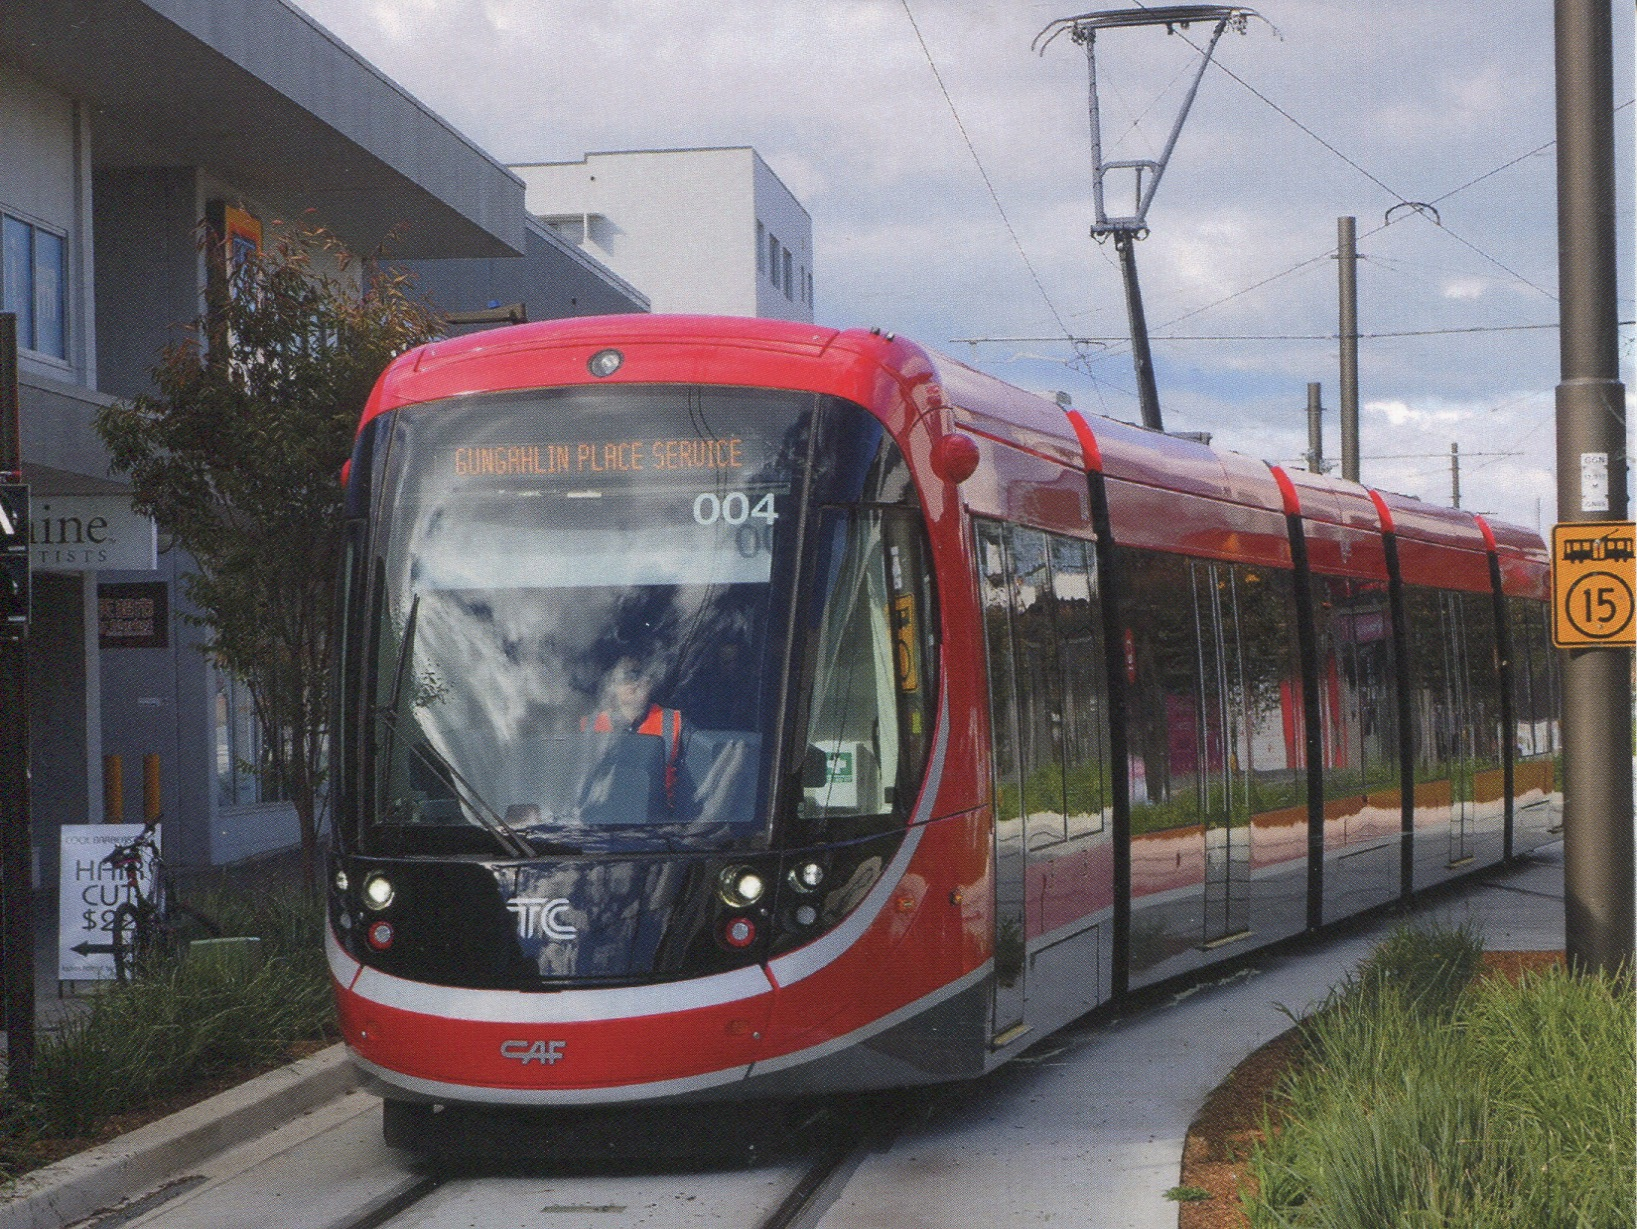 Australia - ACT - City of Canberra Light Rail (Tramway)